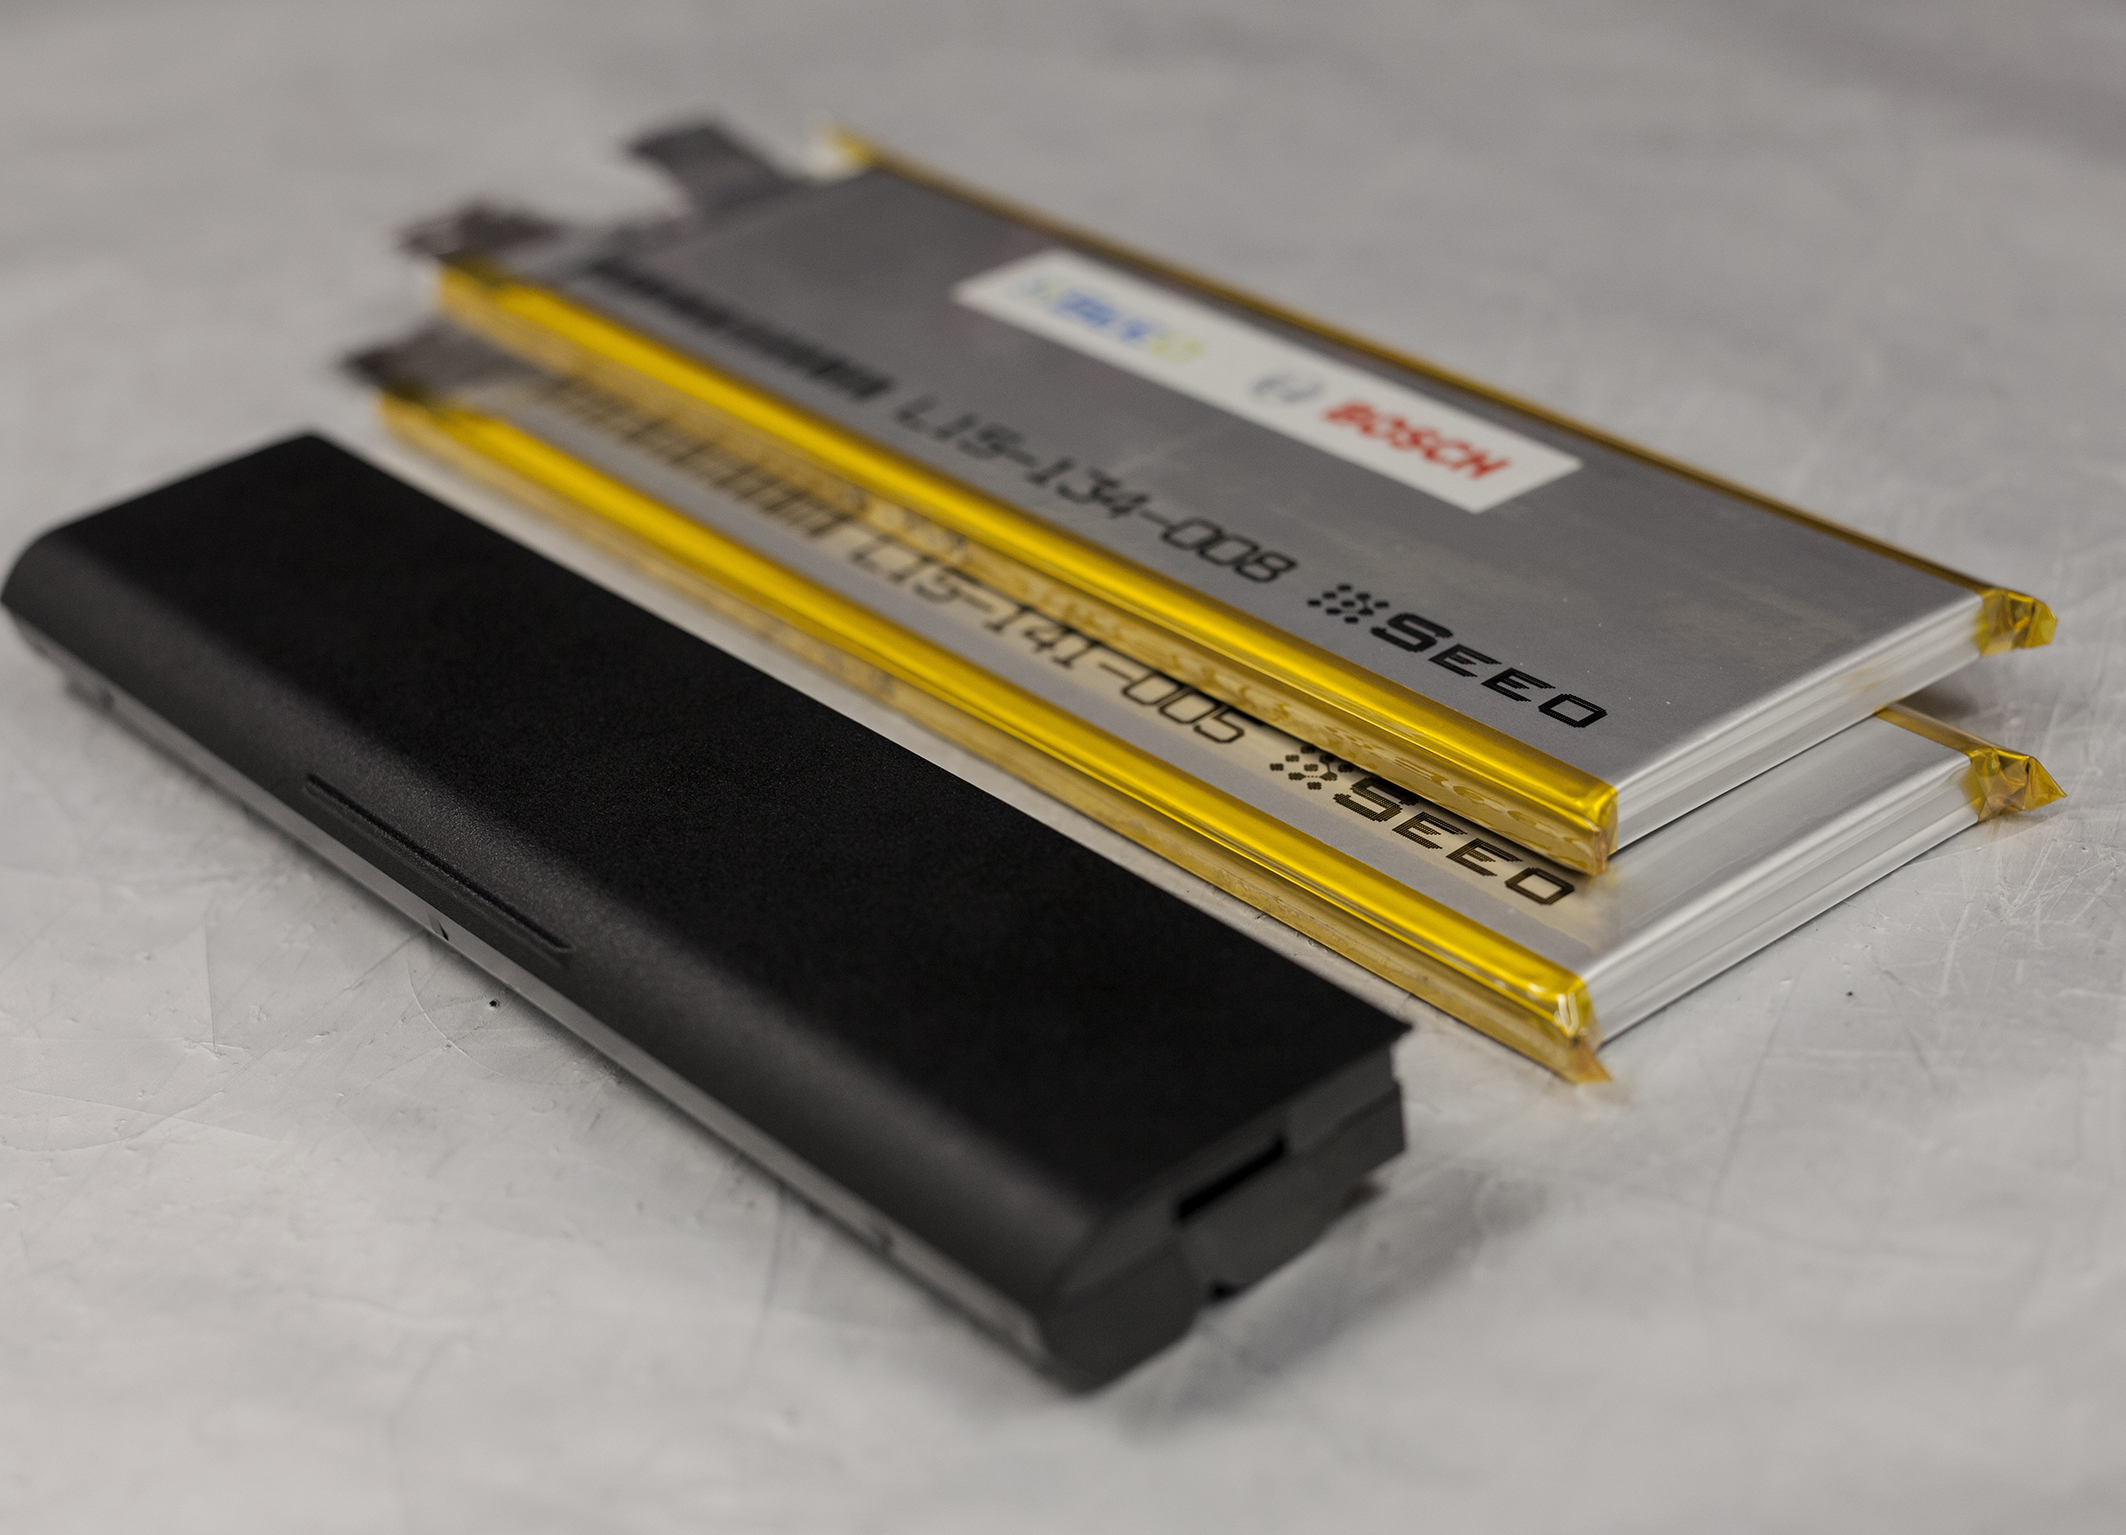 New battery made of solid-state cells compared to a battery of a netbook